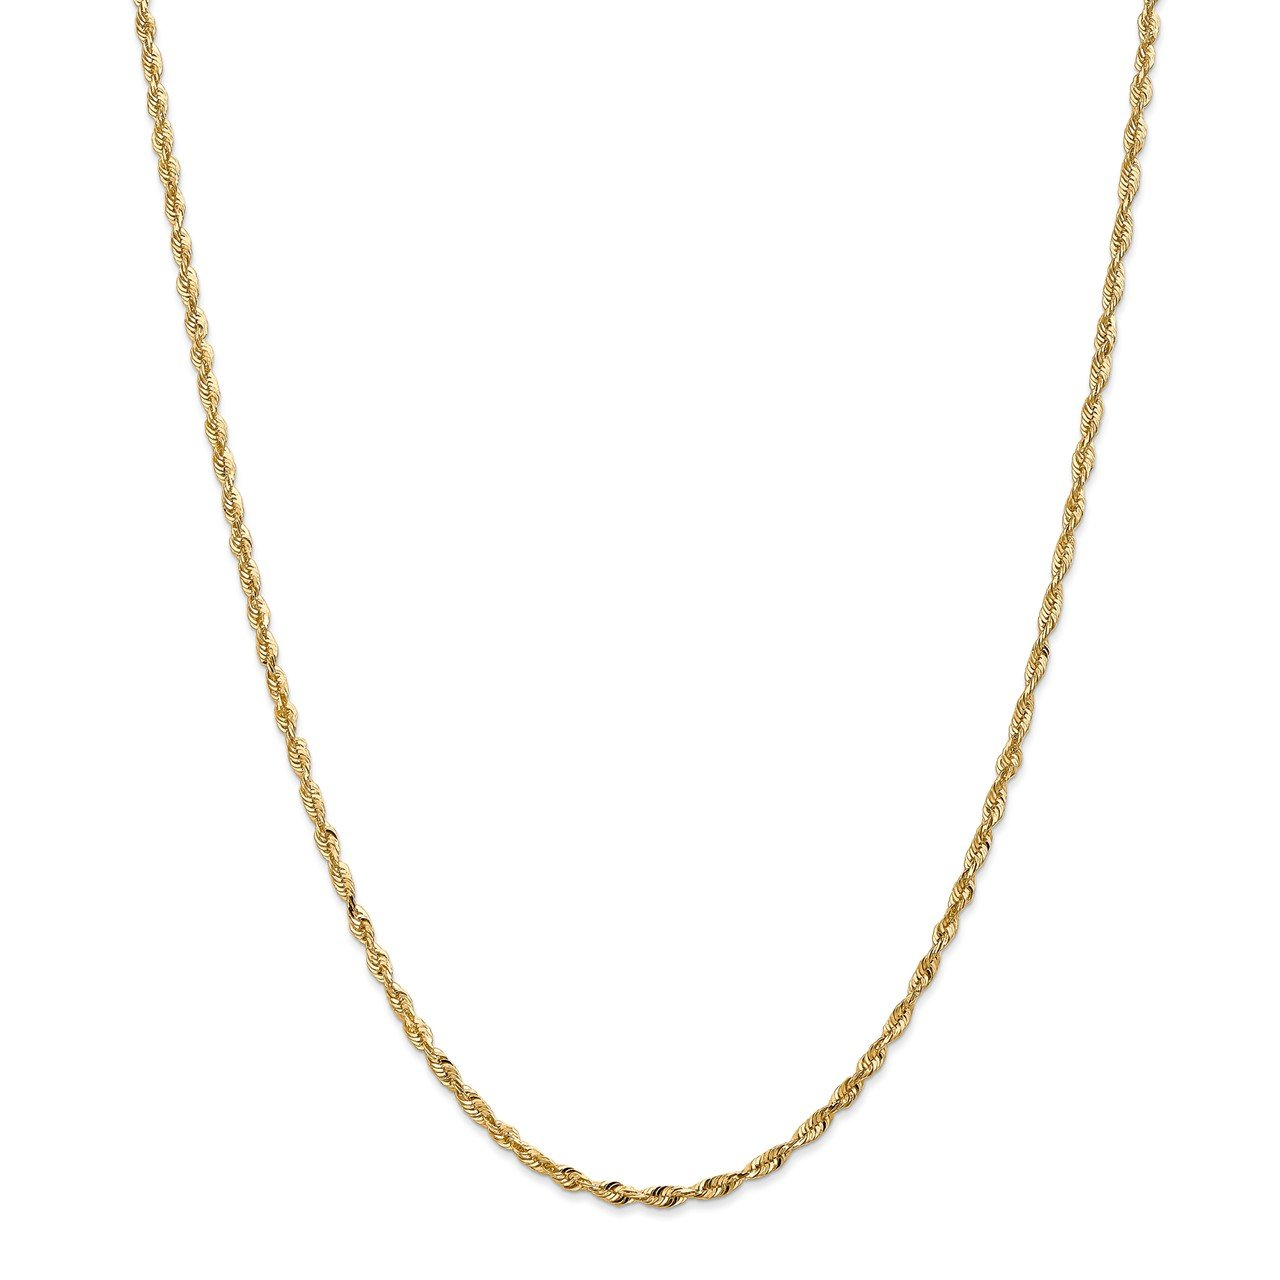 14k 2.5mm Extra-Light D/C Rope Chain